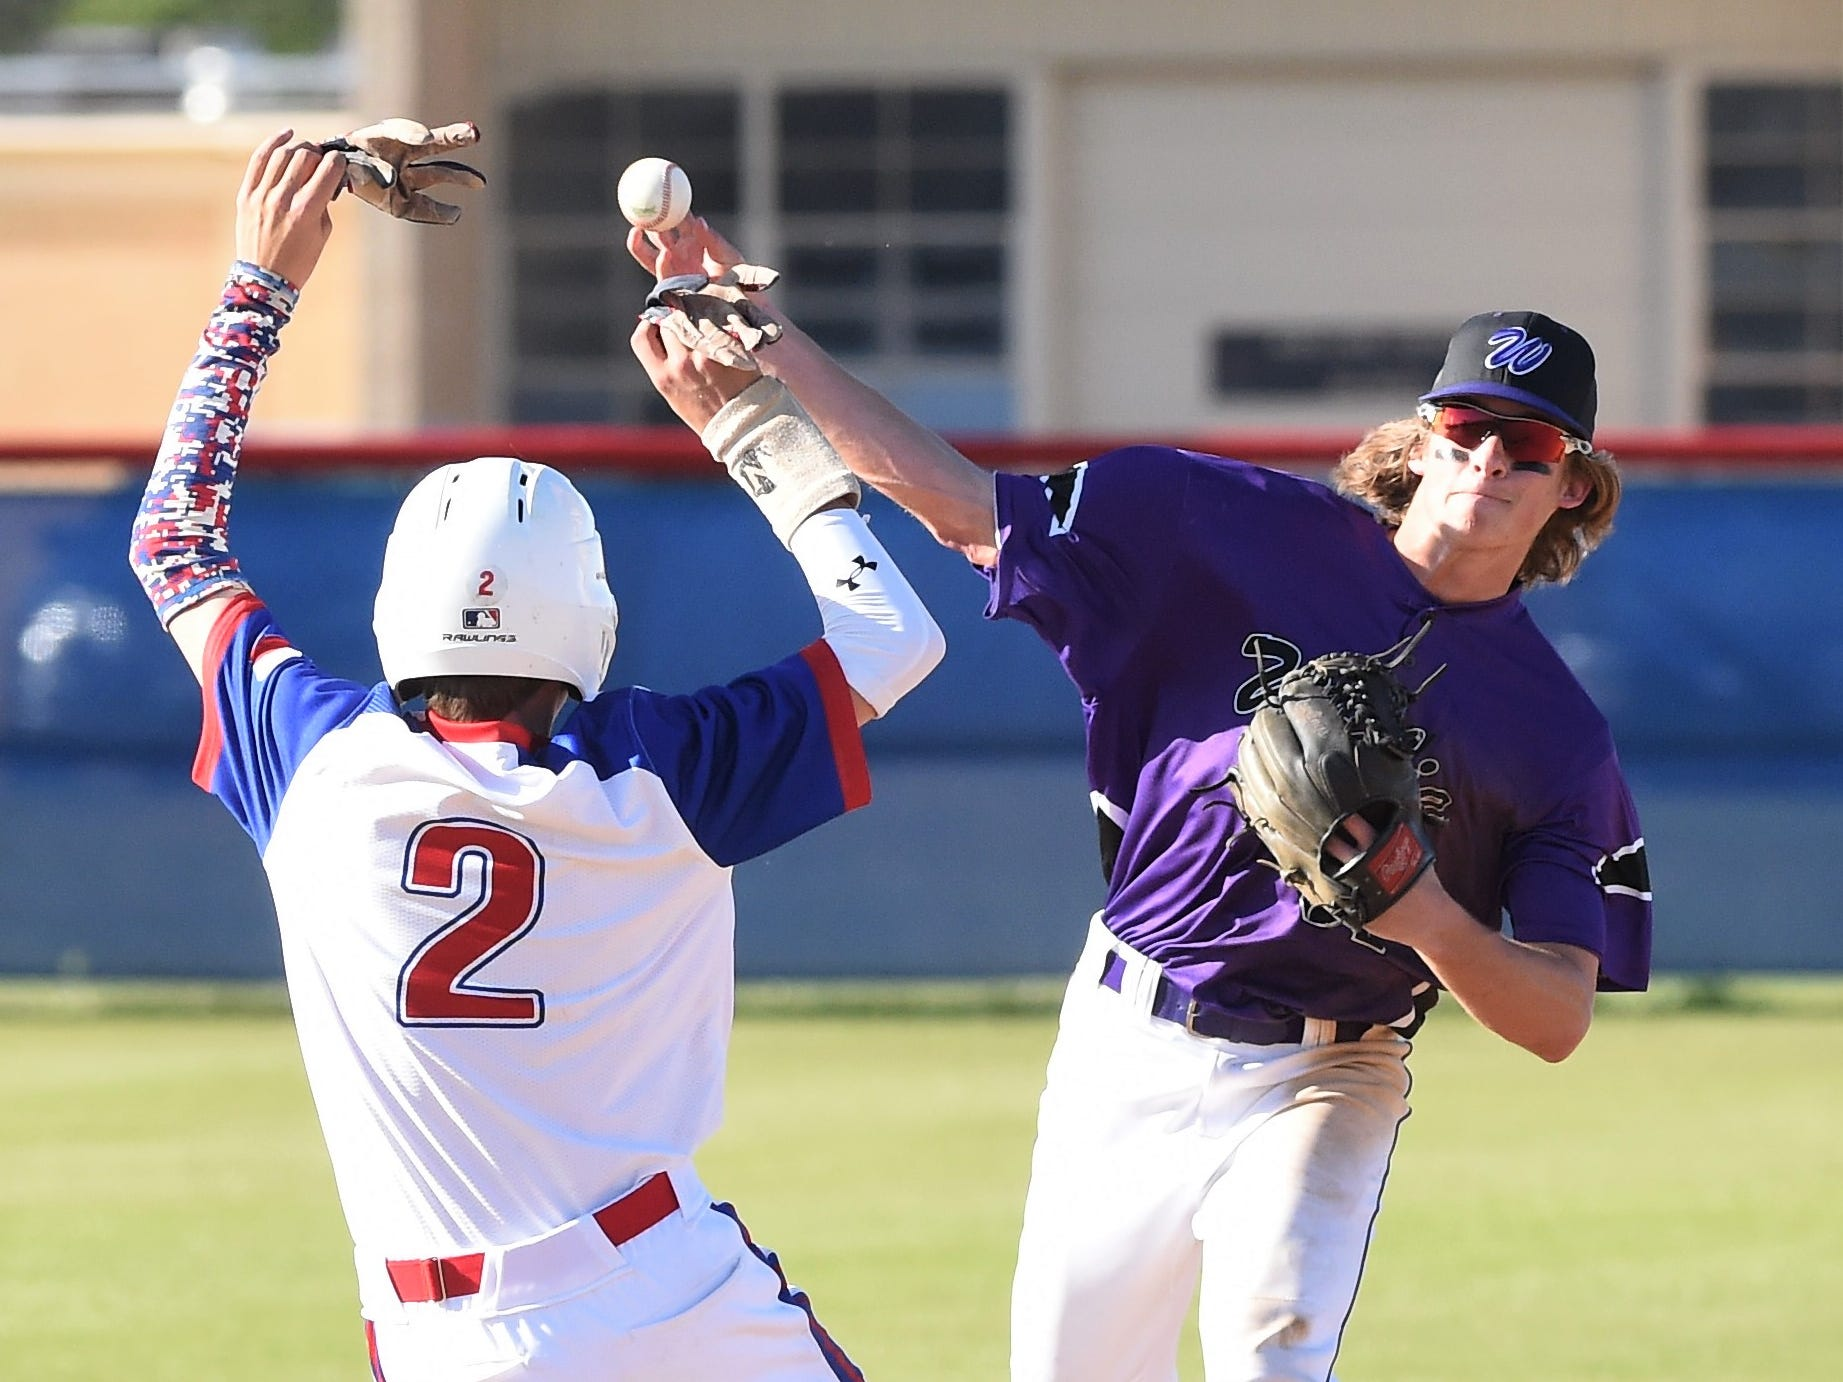 Wylie second baseman Tyler Martin (31) throws around Cooper's Jack Keefer (2) for a double play at Cougar Field on Tuesday, April 9, 2019. The Bulldogs turned three double plays in the 11-5 win.